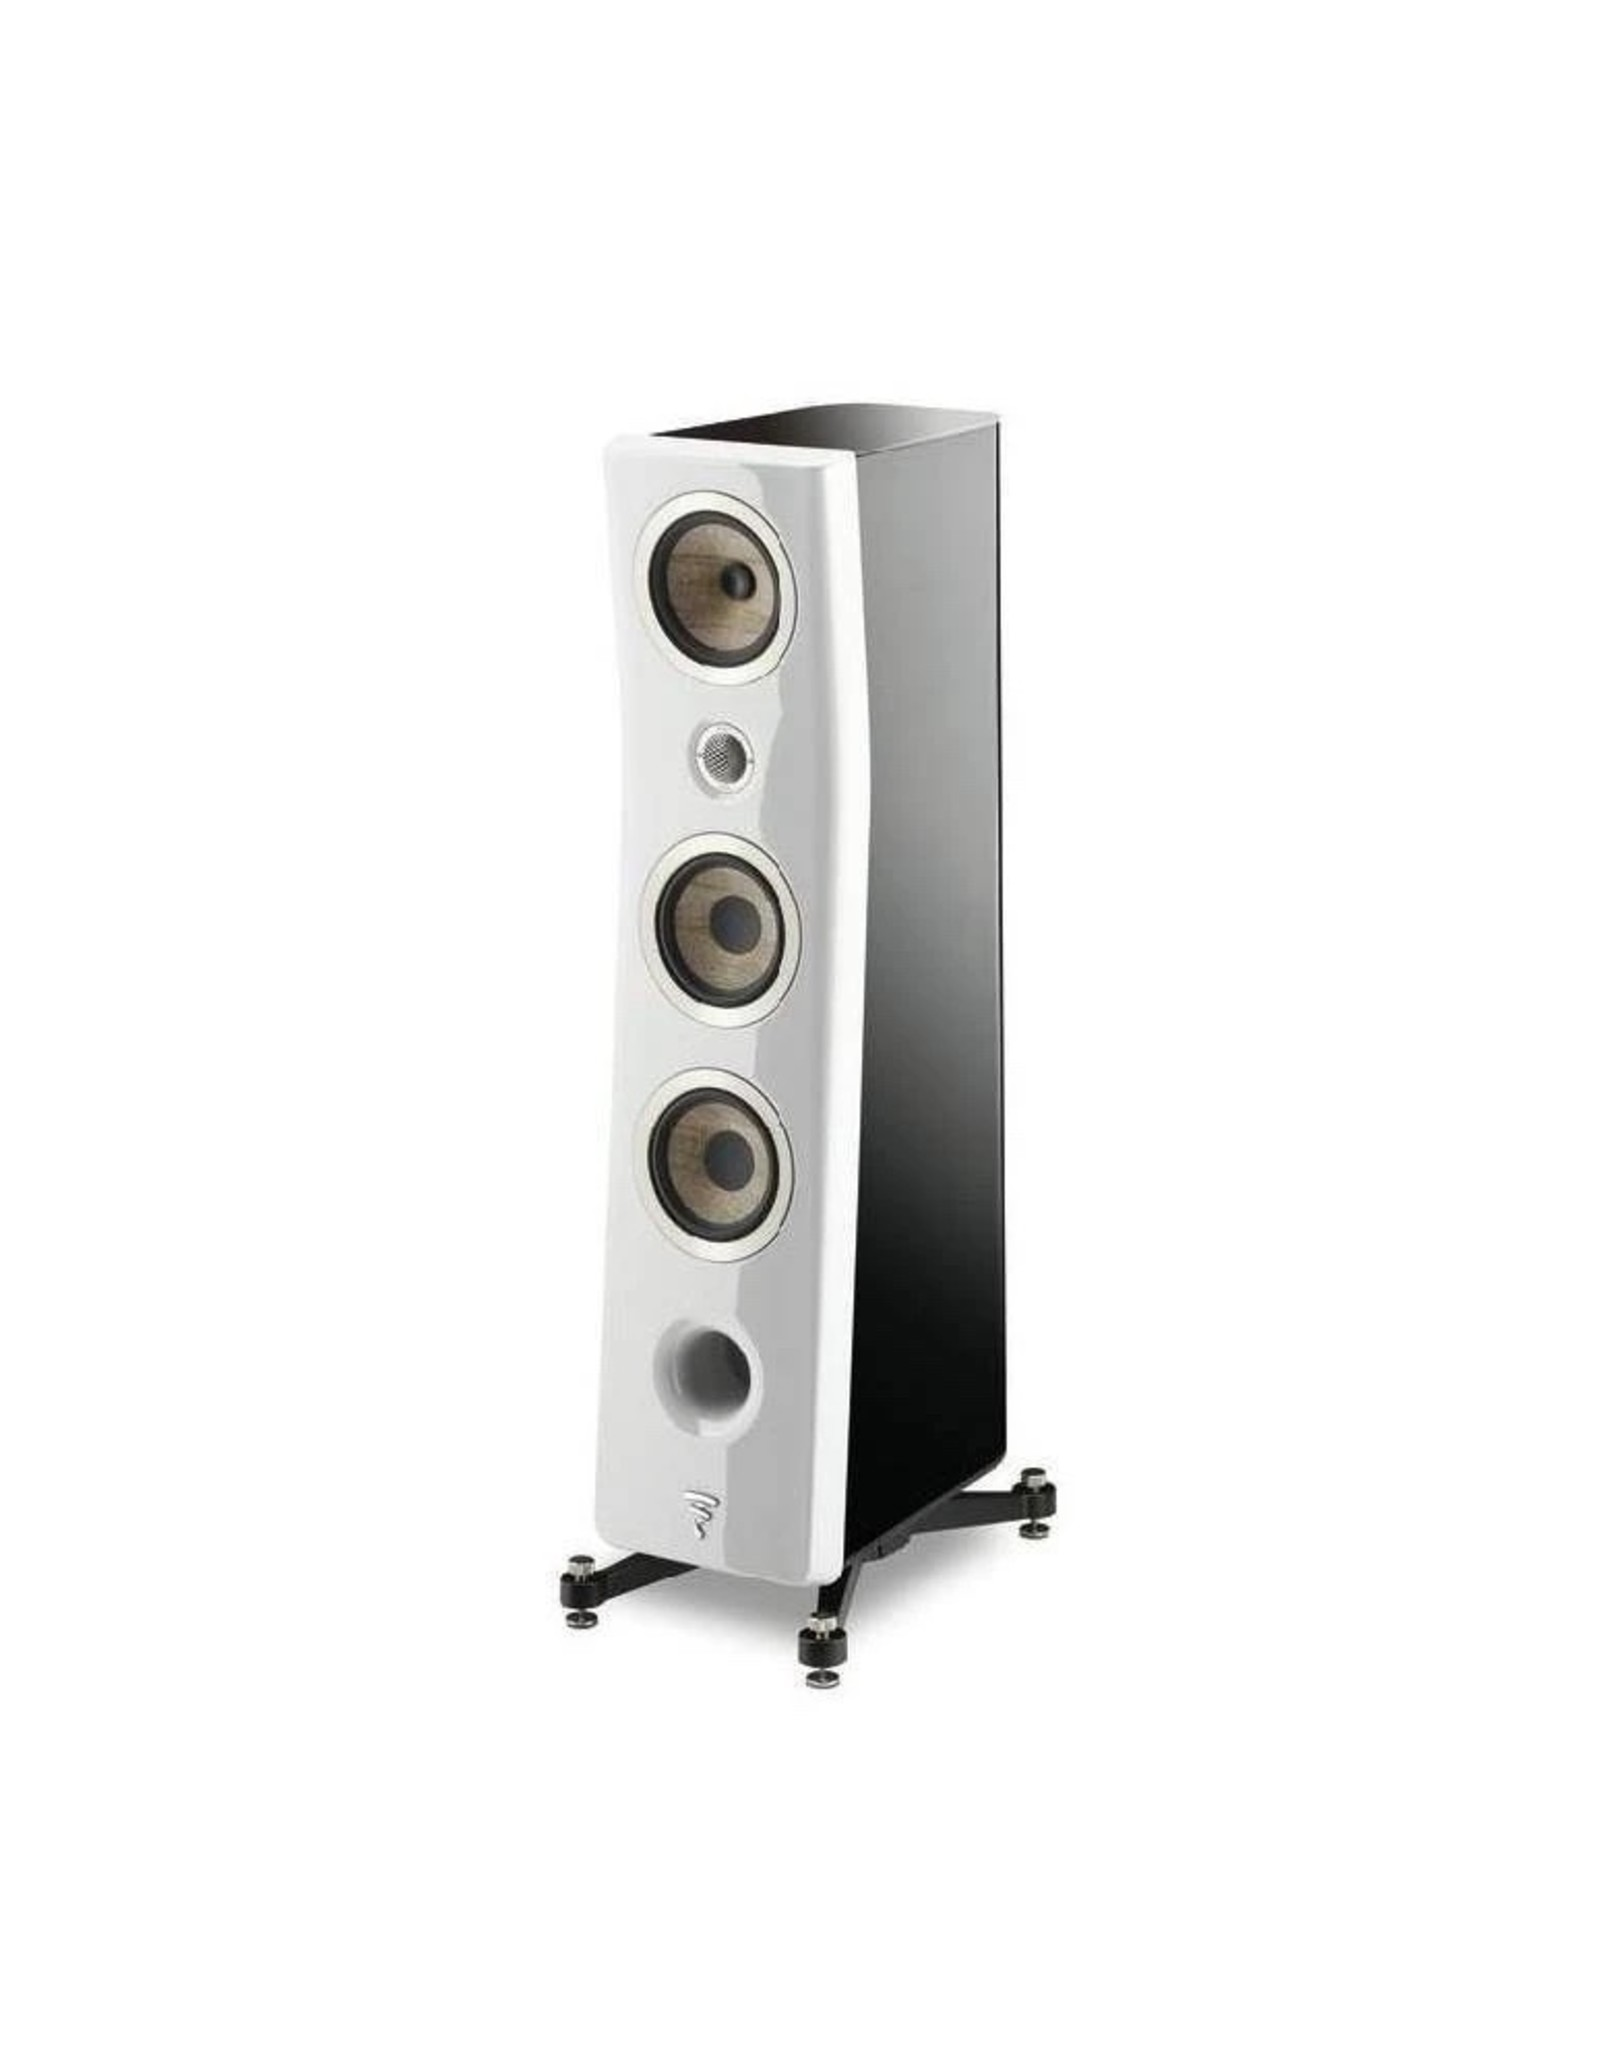 Focal Focal Kanta No2 Floorstanding Speakers (Pair) FACTORY REFURBISHED